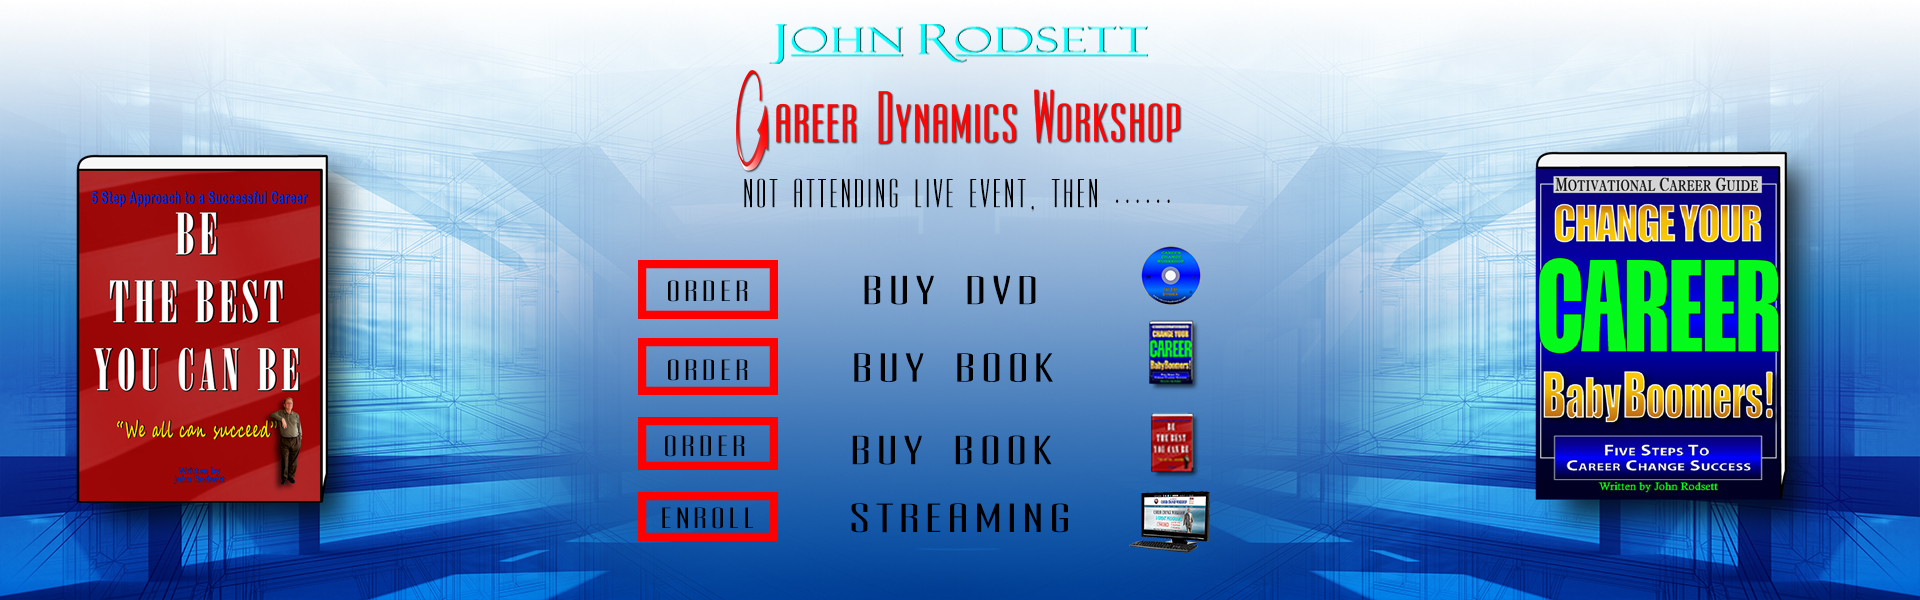 Not-Attending-Live-Event_then_rev_Career-Dynamics (2)